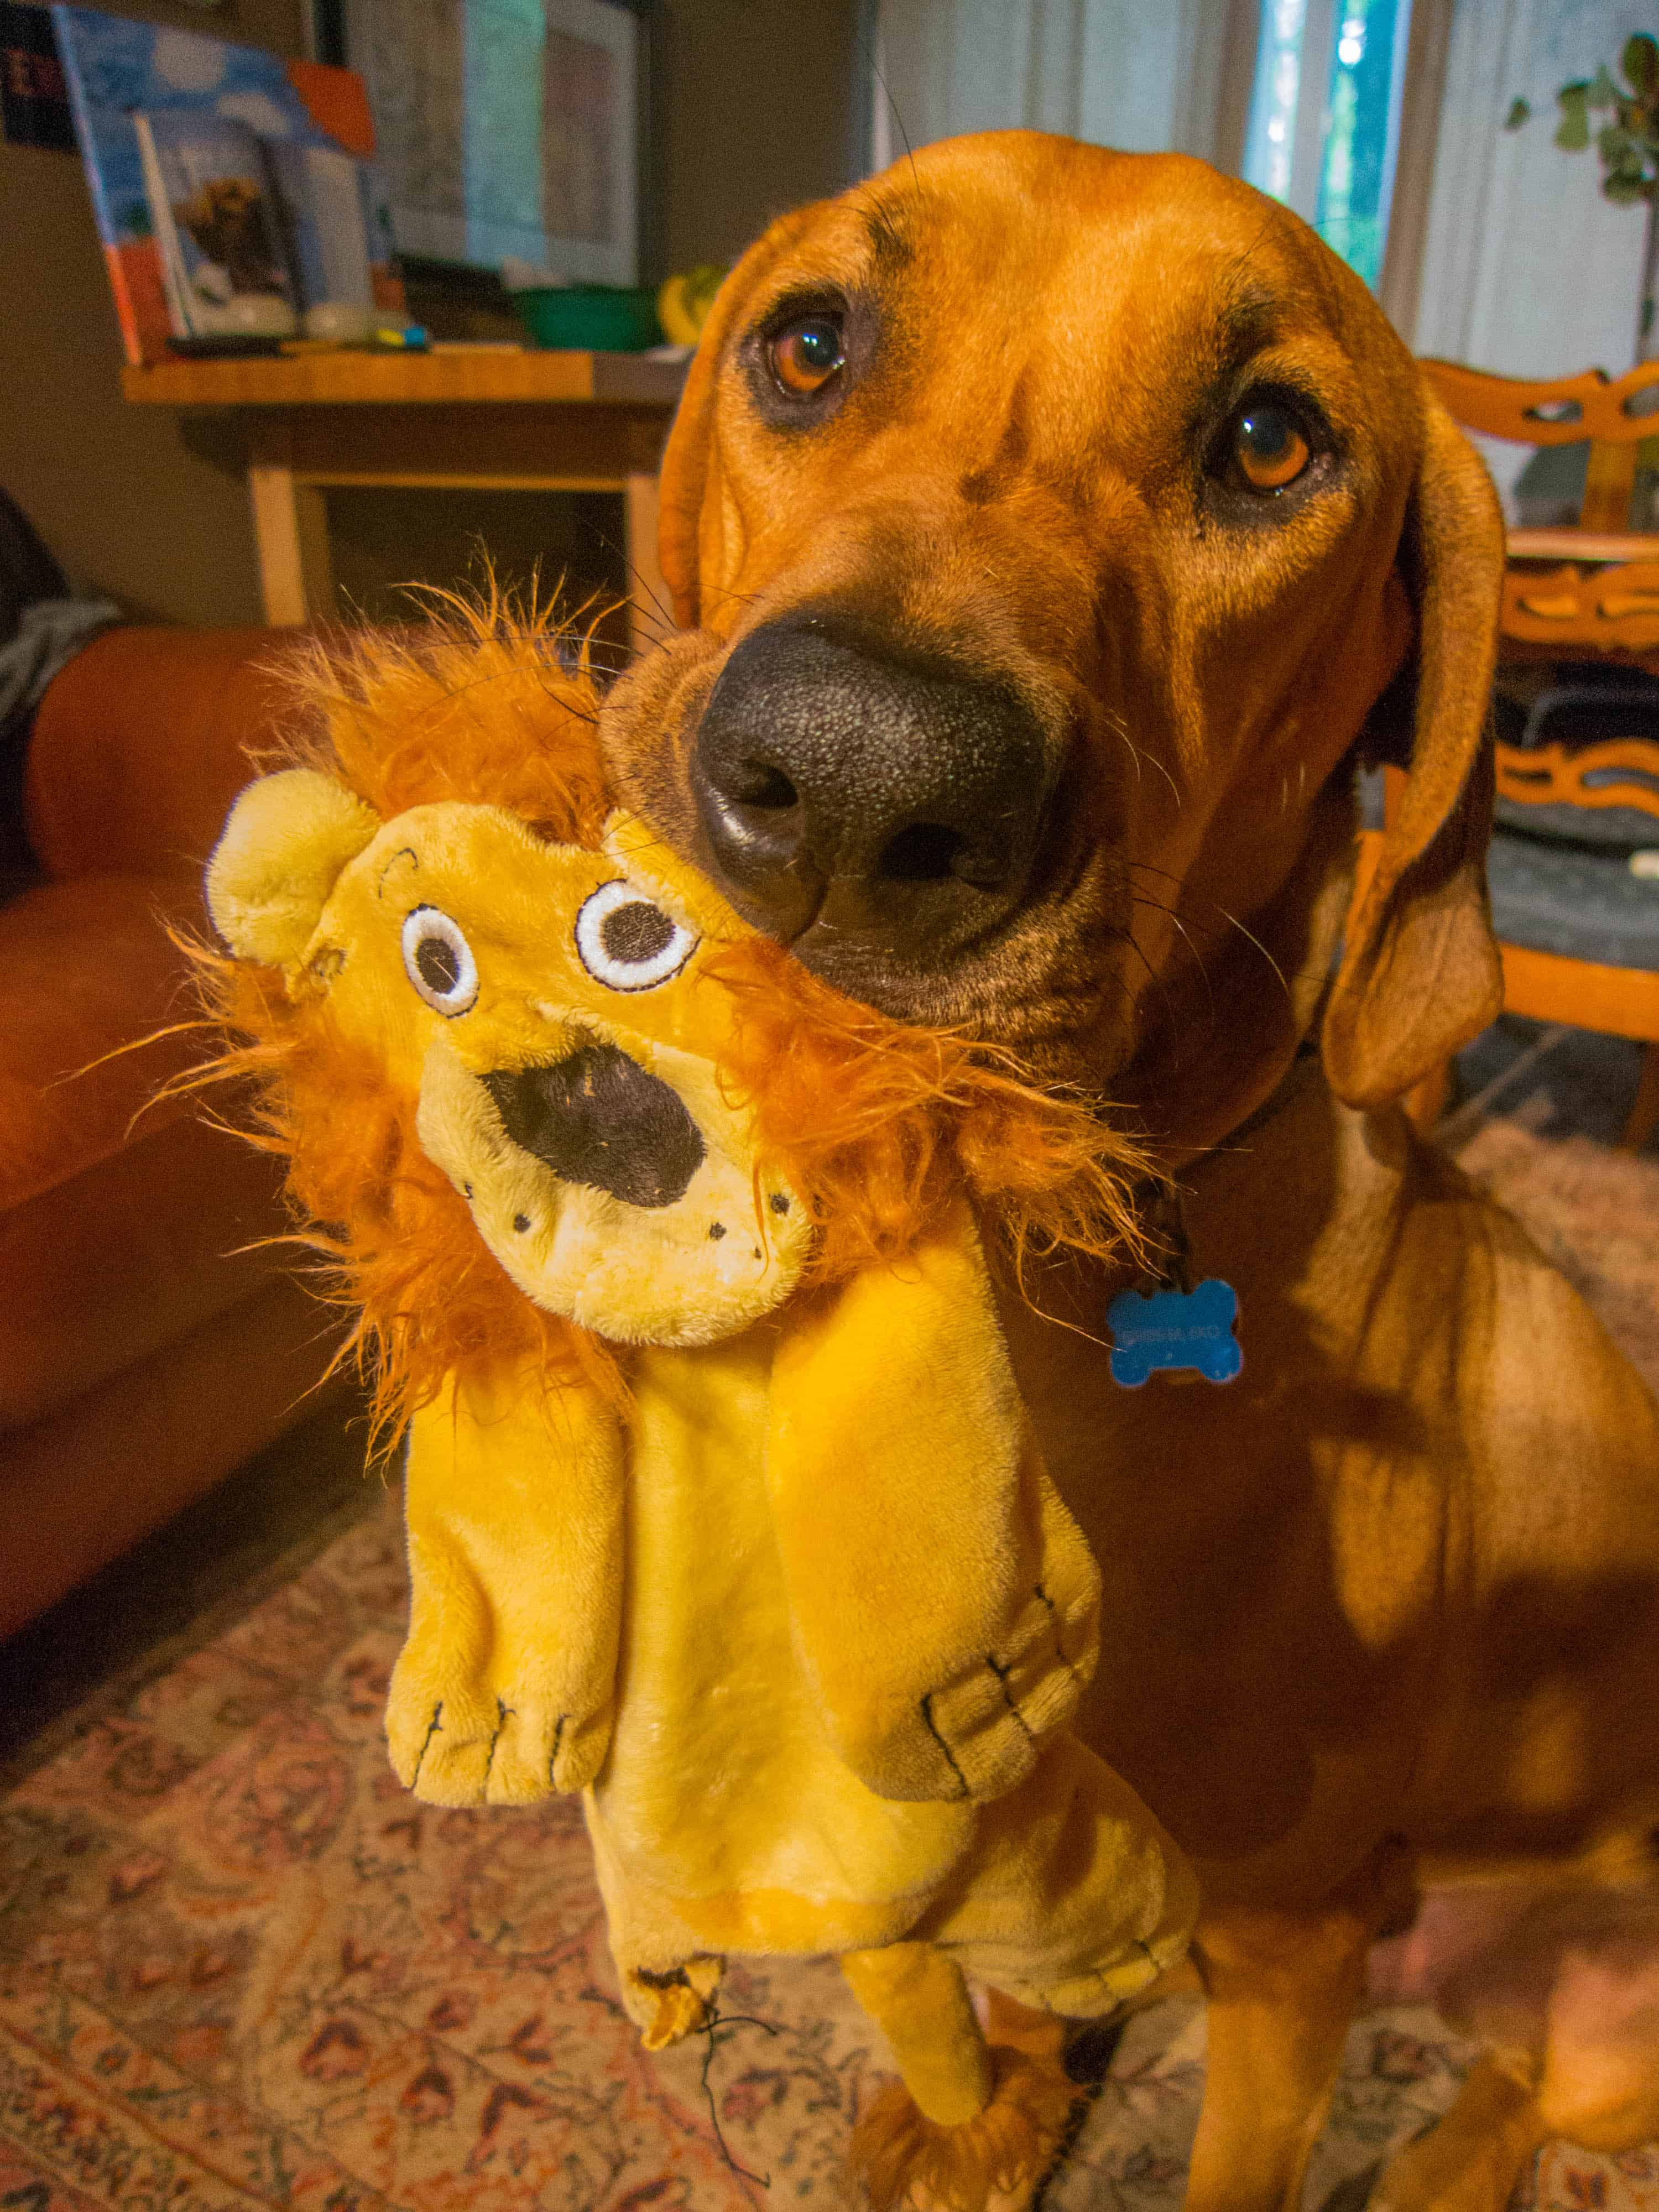 Rhodesian Ridgeback, adventure, dogs, funny, marking our territory, dog toys